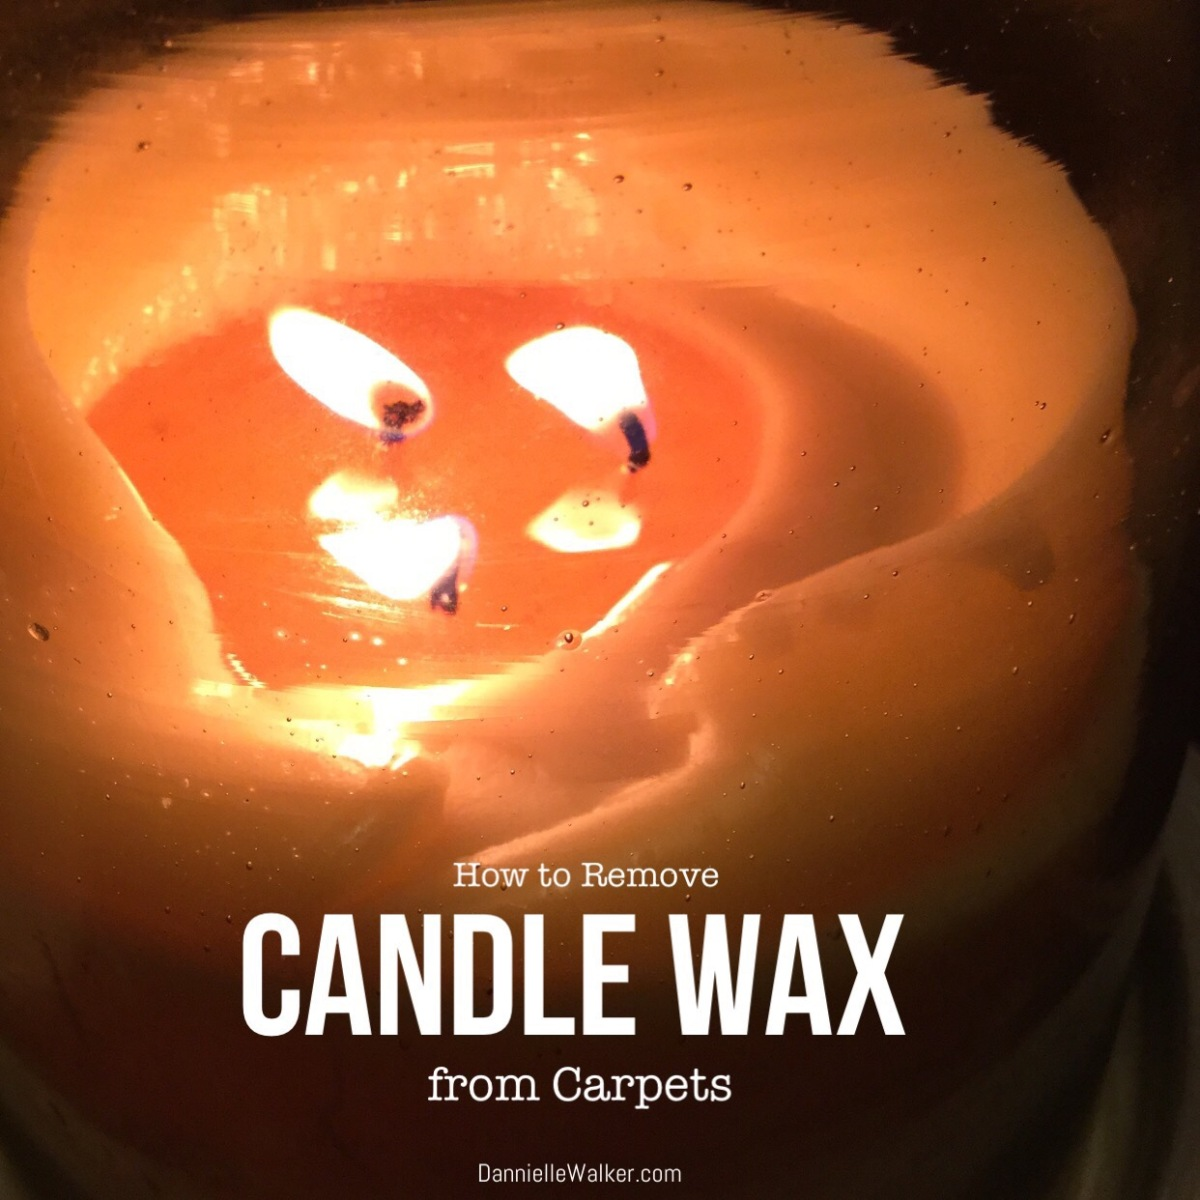 How to Remove Candle Wax from Carpets